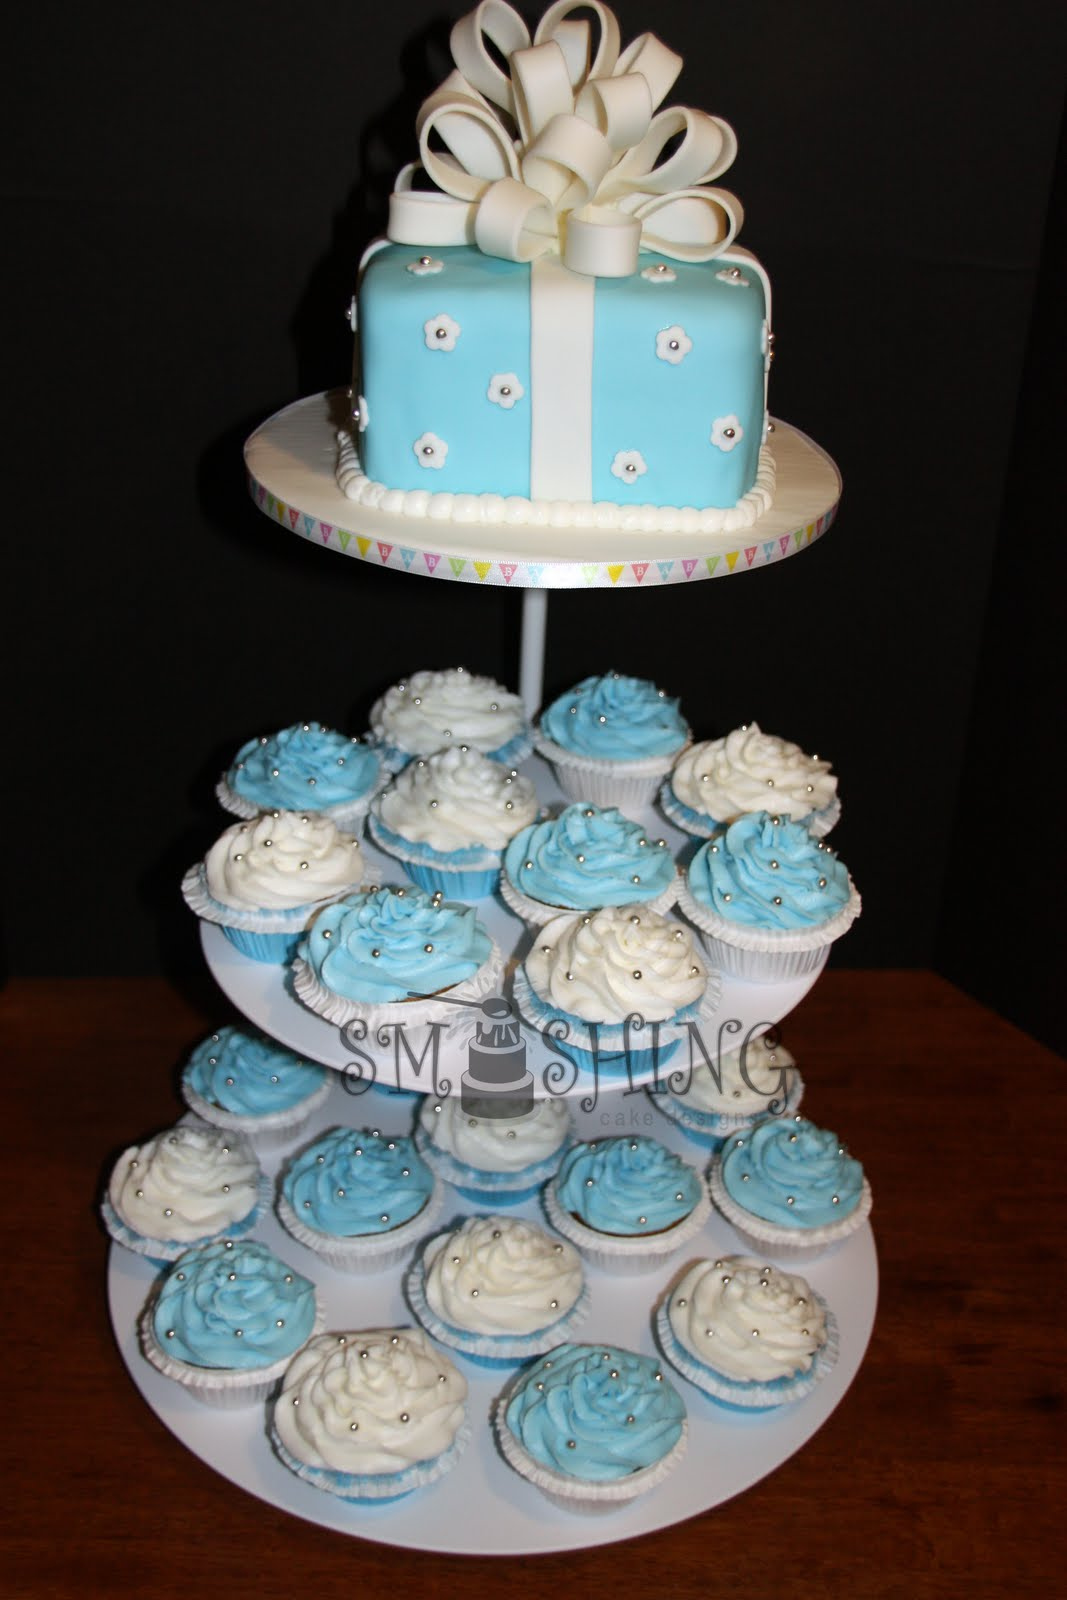 Cake Decorating Ideas For Baby Shower : Baby Shower Cakes: Baby Shower Cupcake Cake Ideas Boy